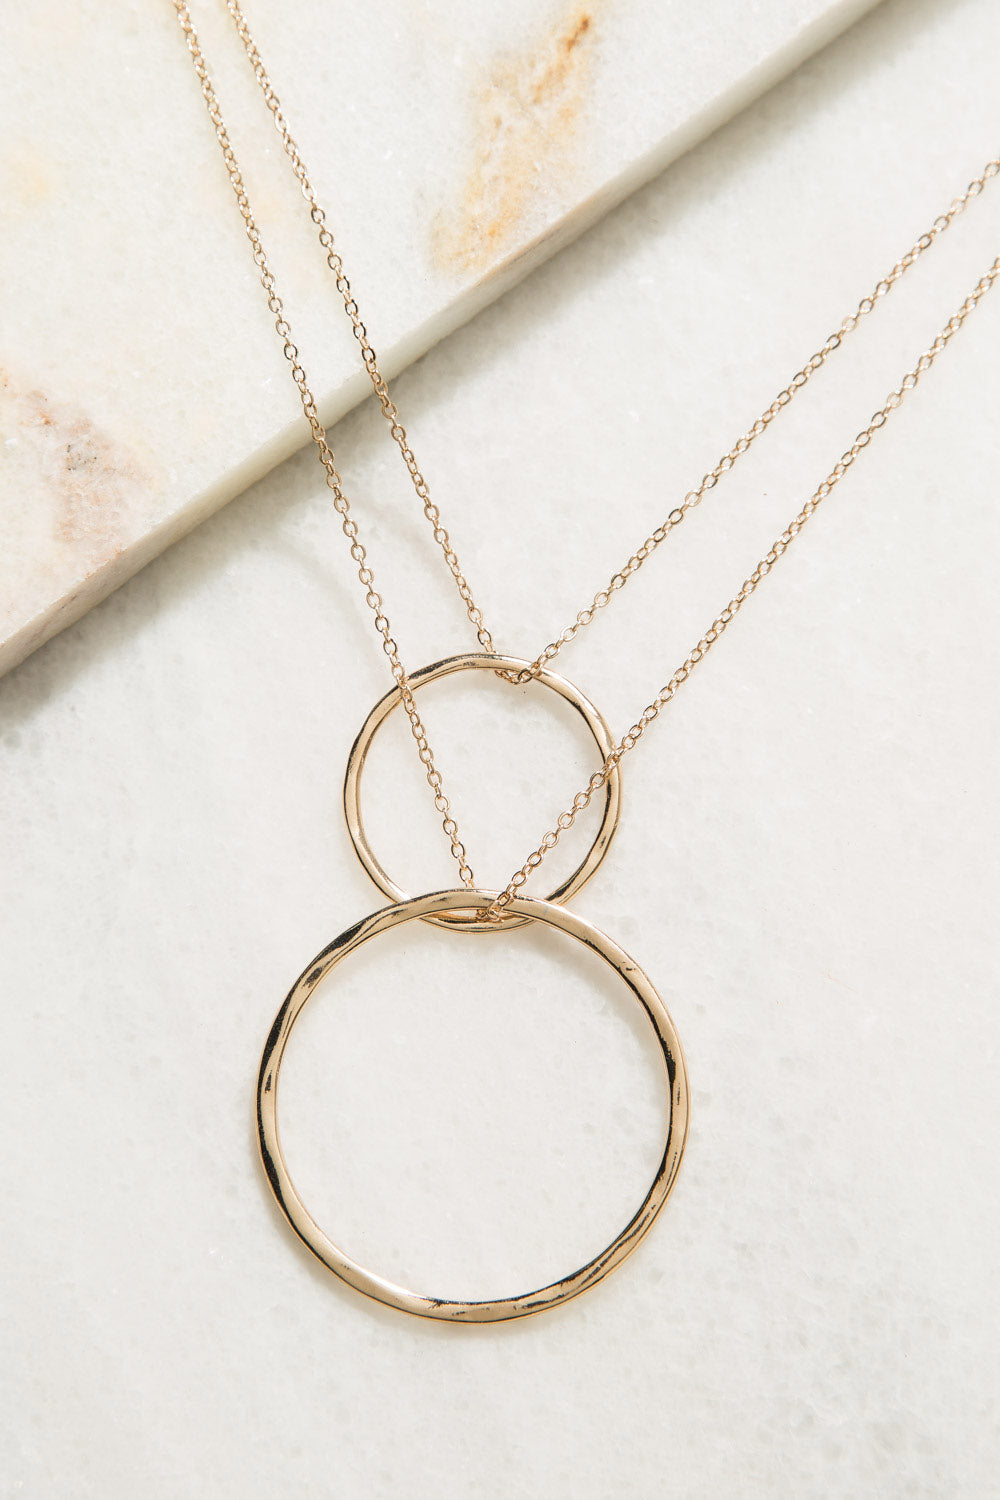 Type 1 Second Circle Necklace